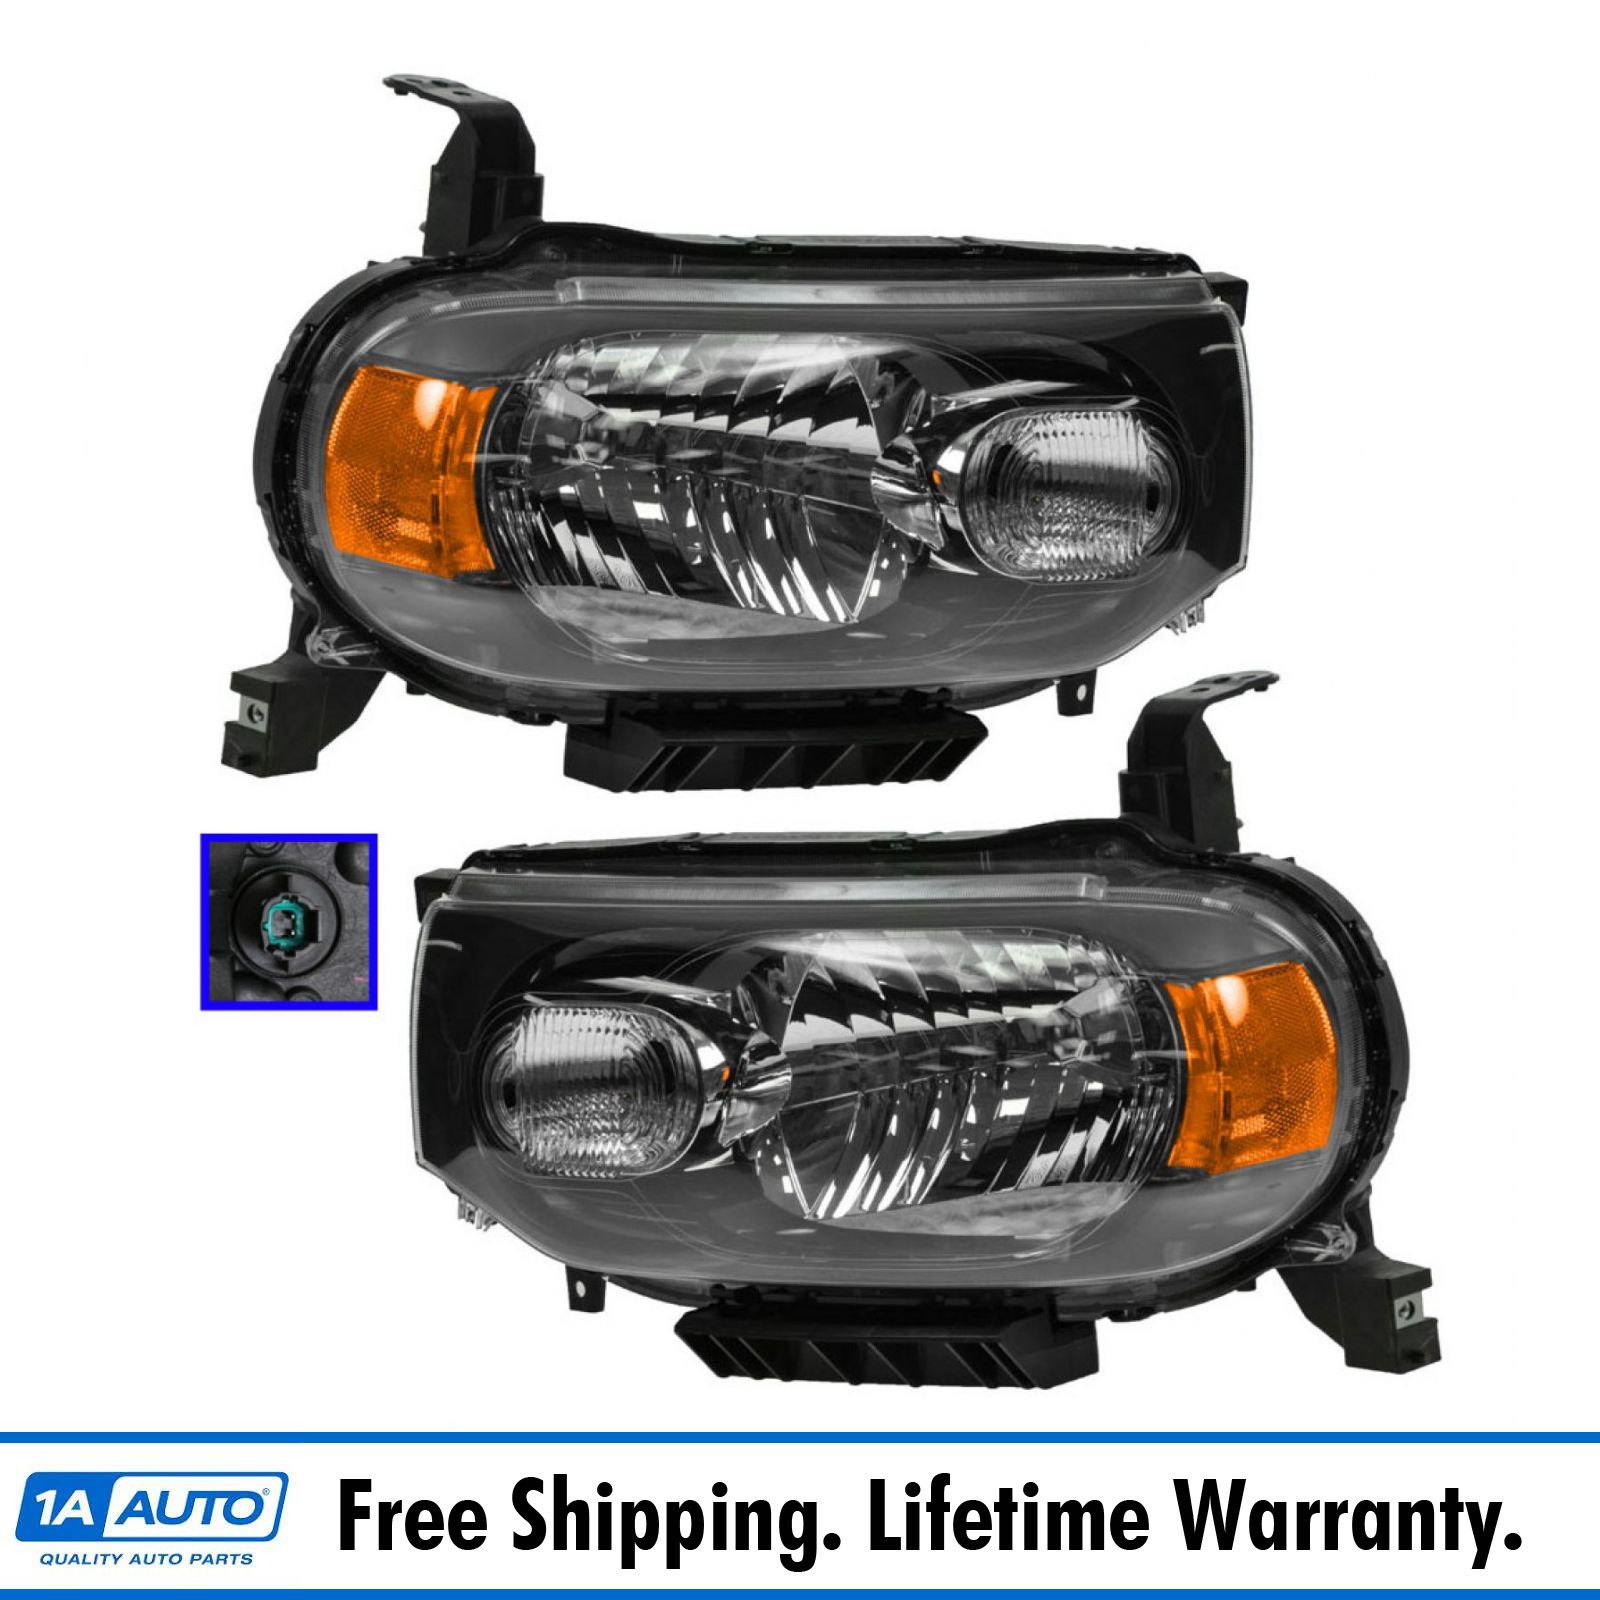 Headlamp Headlight Light Lamp Passenger Driver Pair Set For 09 13 Nissan Cube Ebay